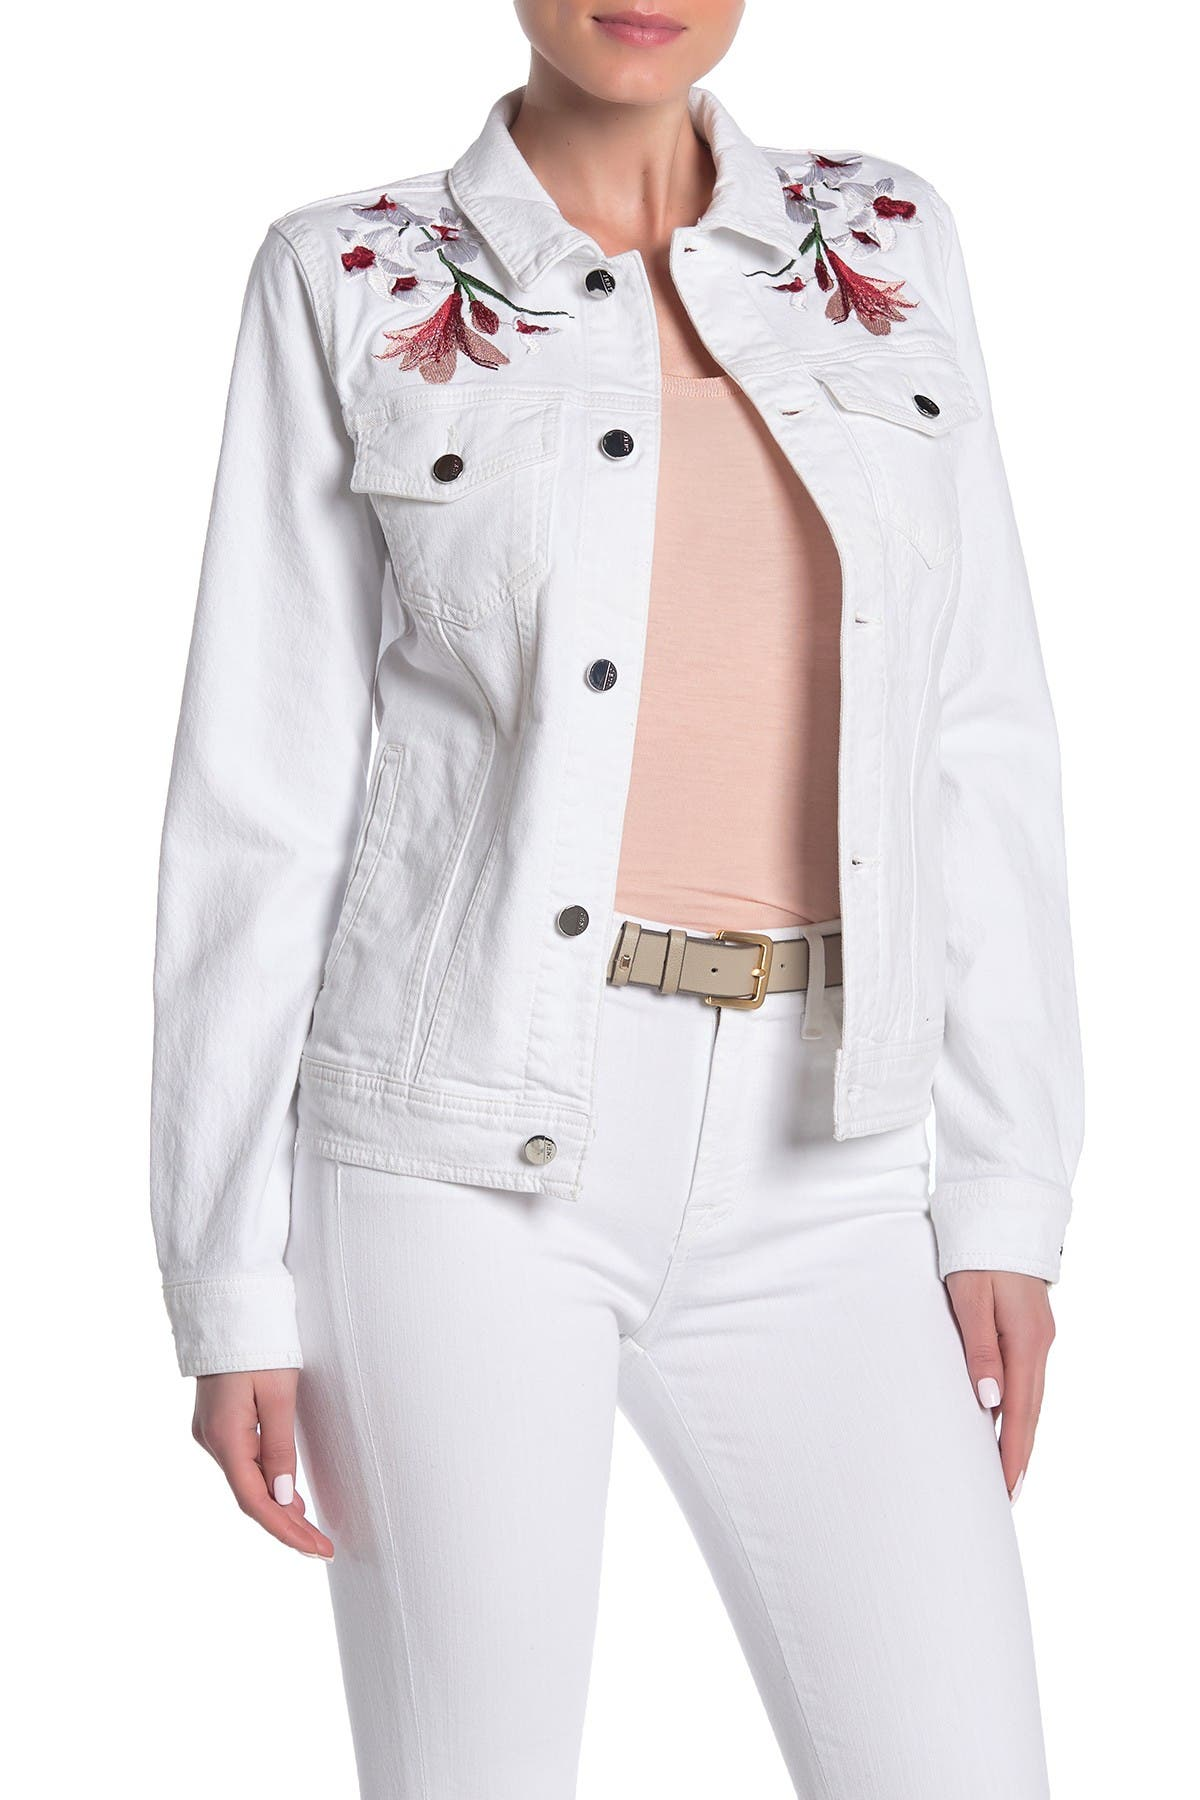 Image of Jen7 by 7 For All Mankind Floral Embroidered Denim Trucker Jacket